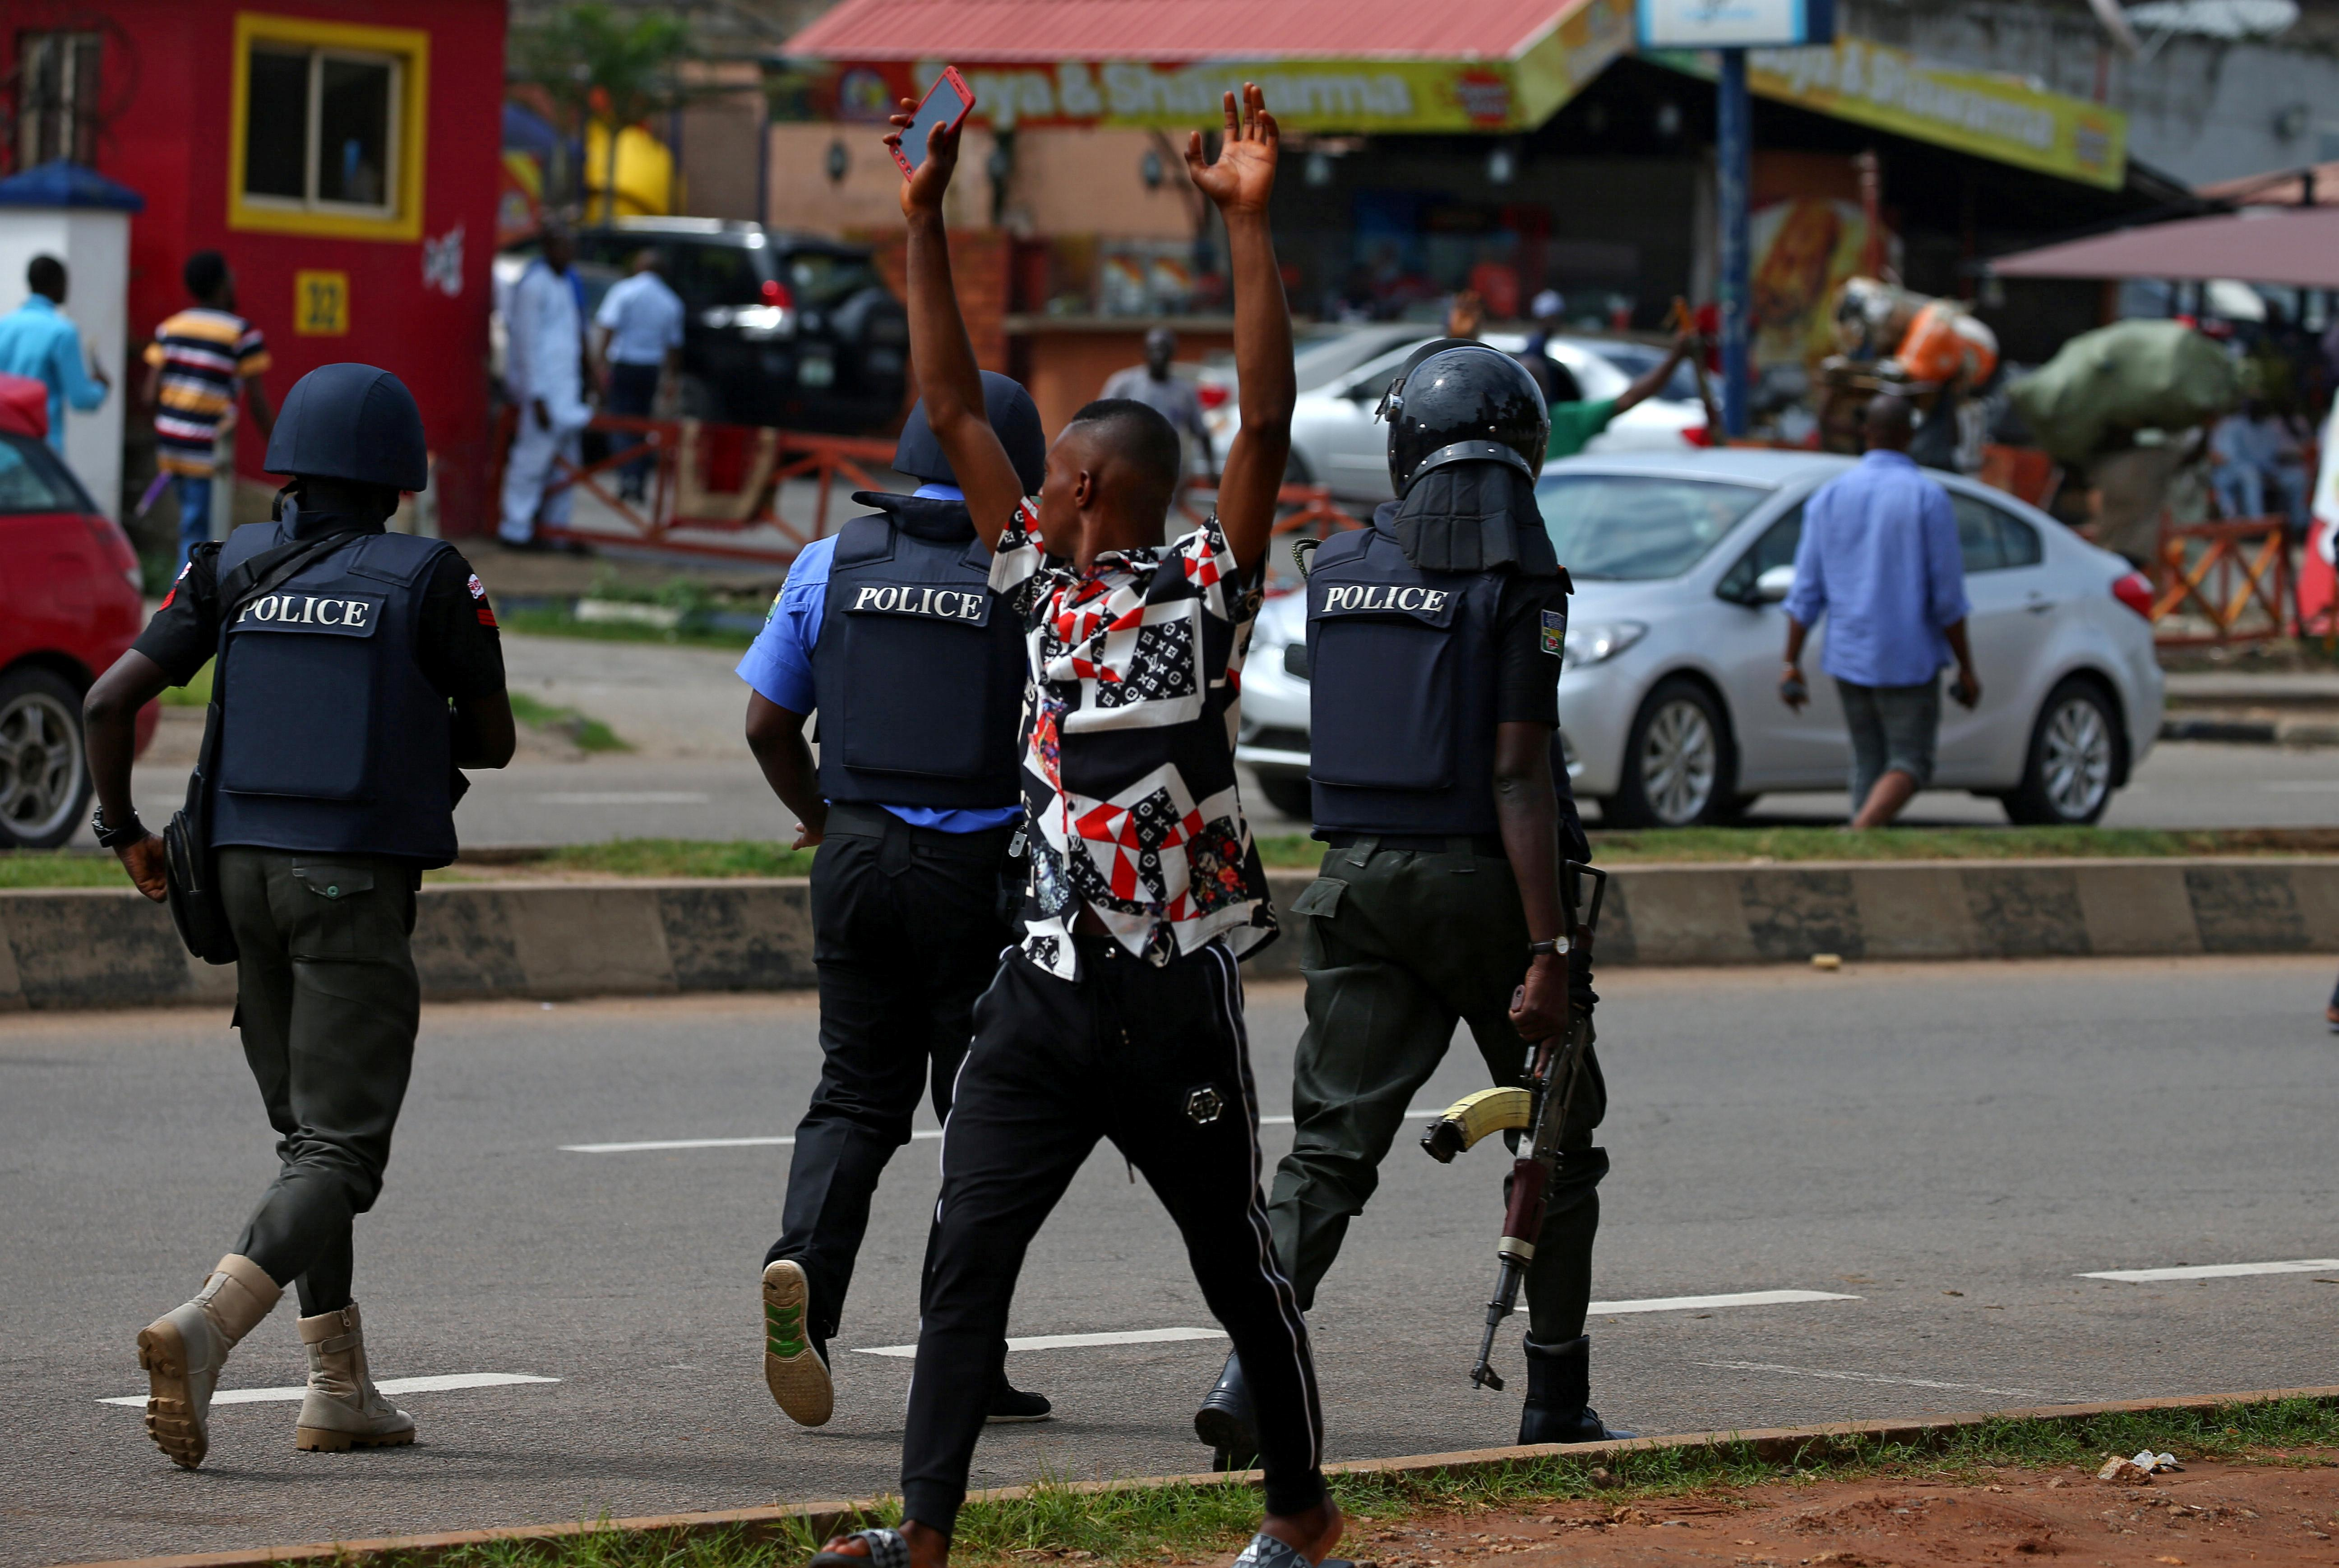 Shi'ite protesters clash with Nigeria military, police in Abuja